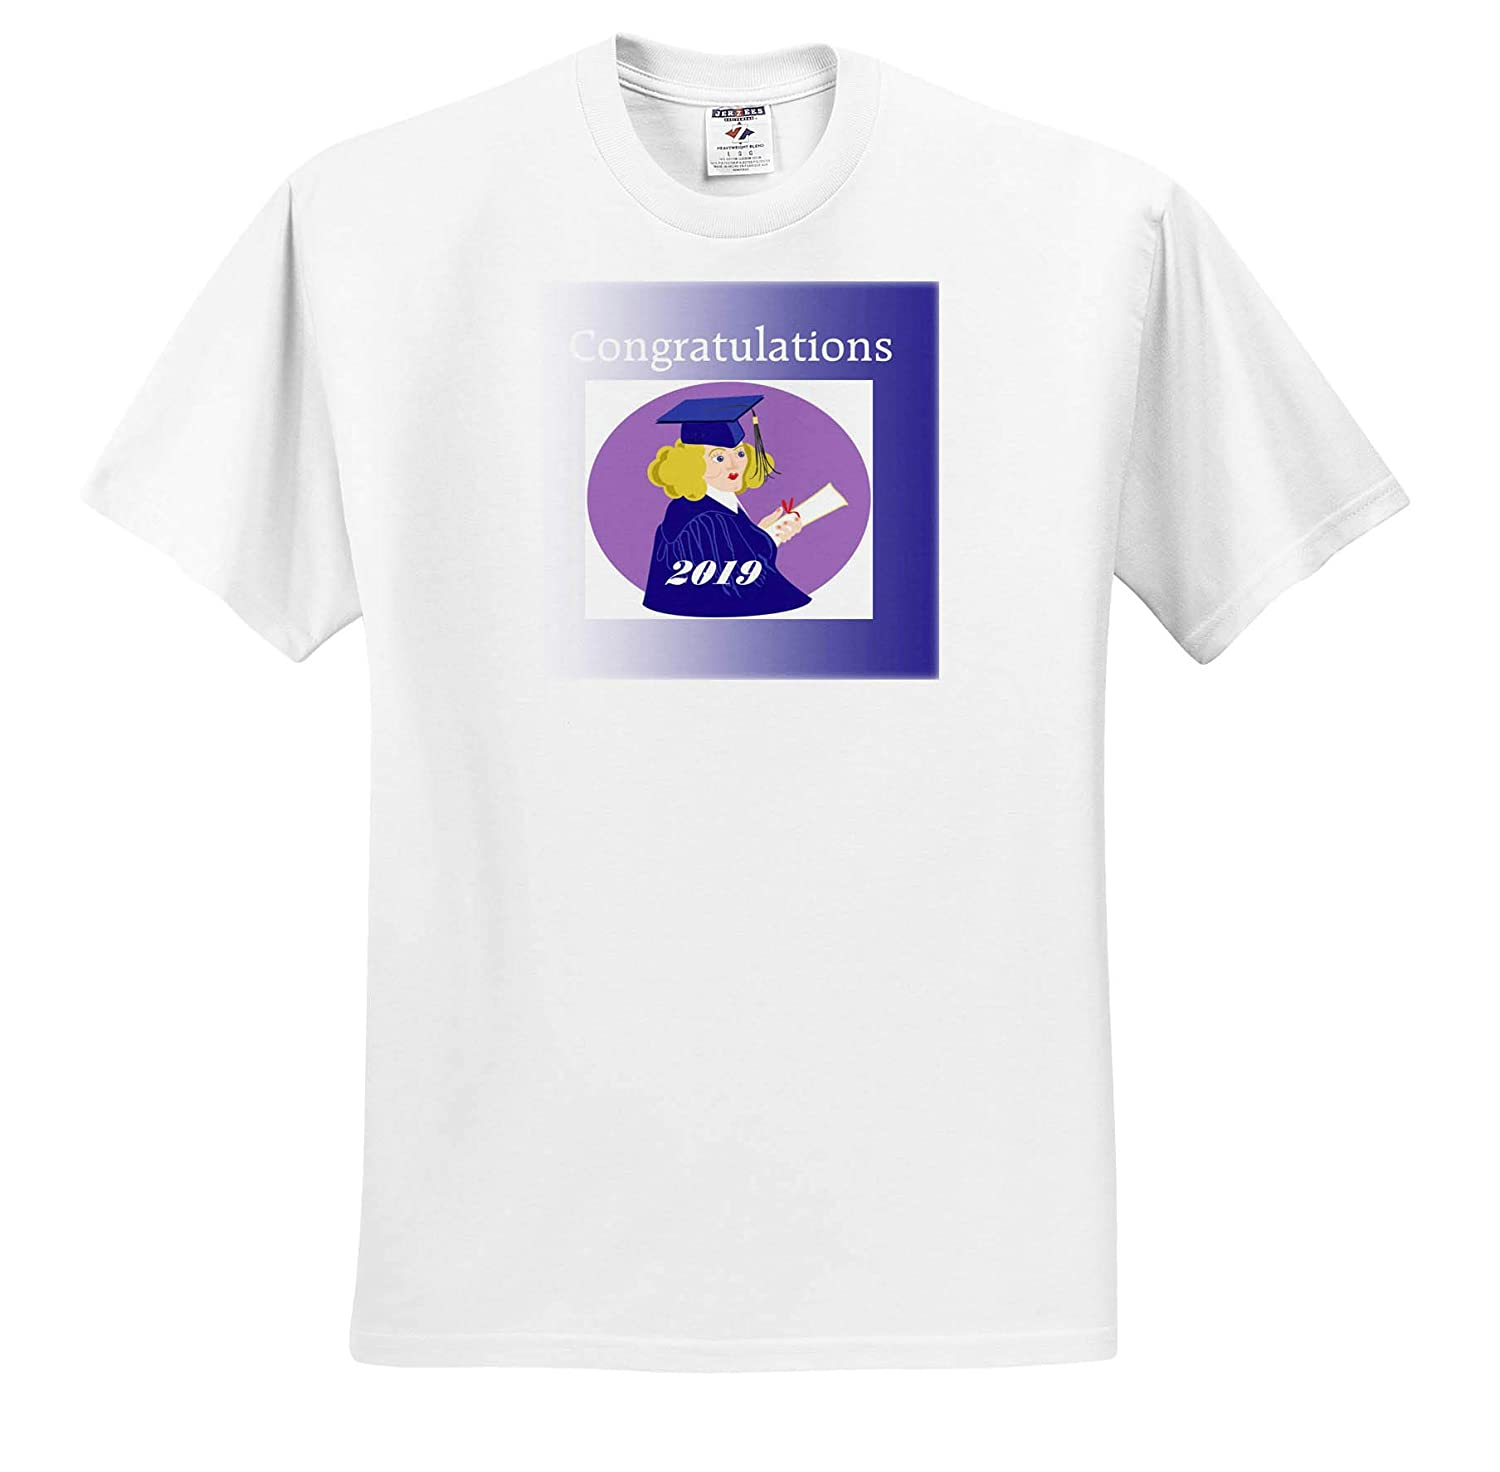 T-Shirts 3dRose Lens Art by Florene Image of Girl in Graduation Gown and Congratulations 2019 Graduation